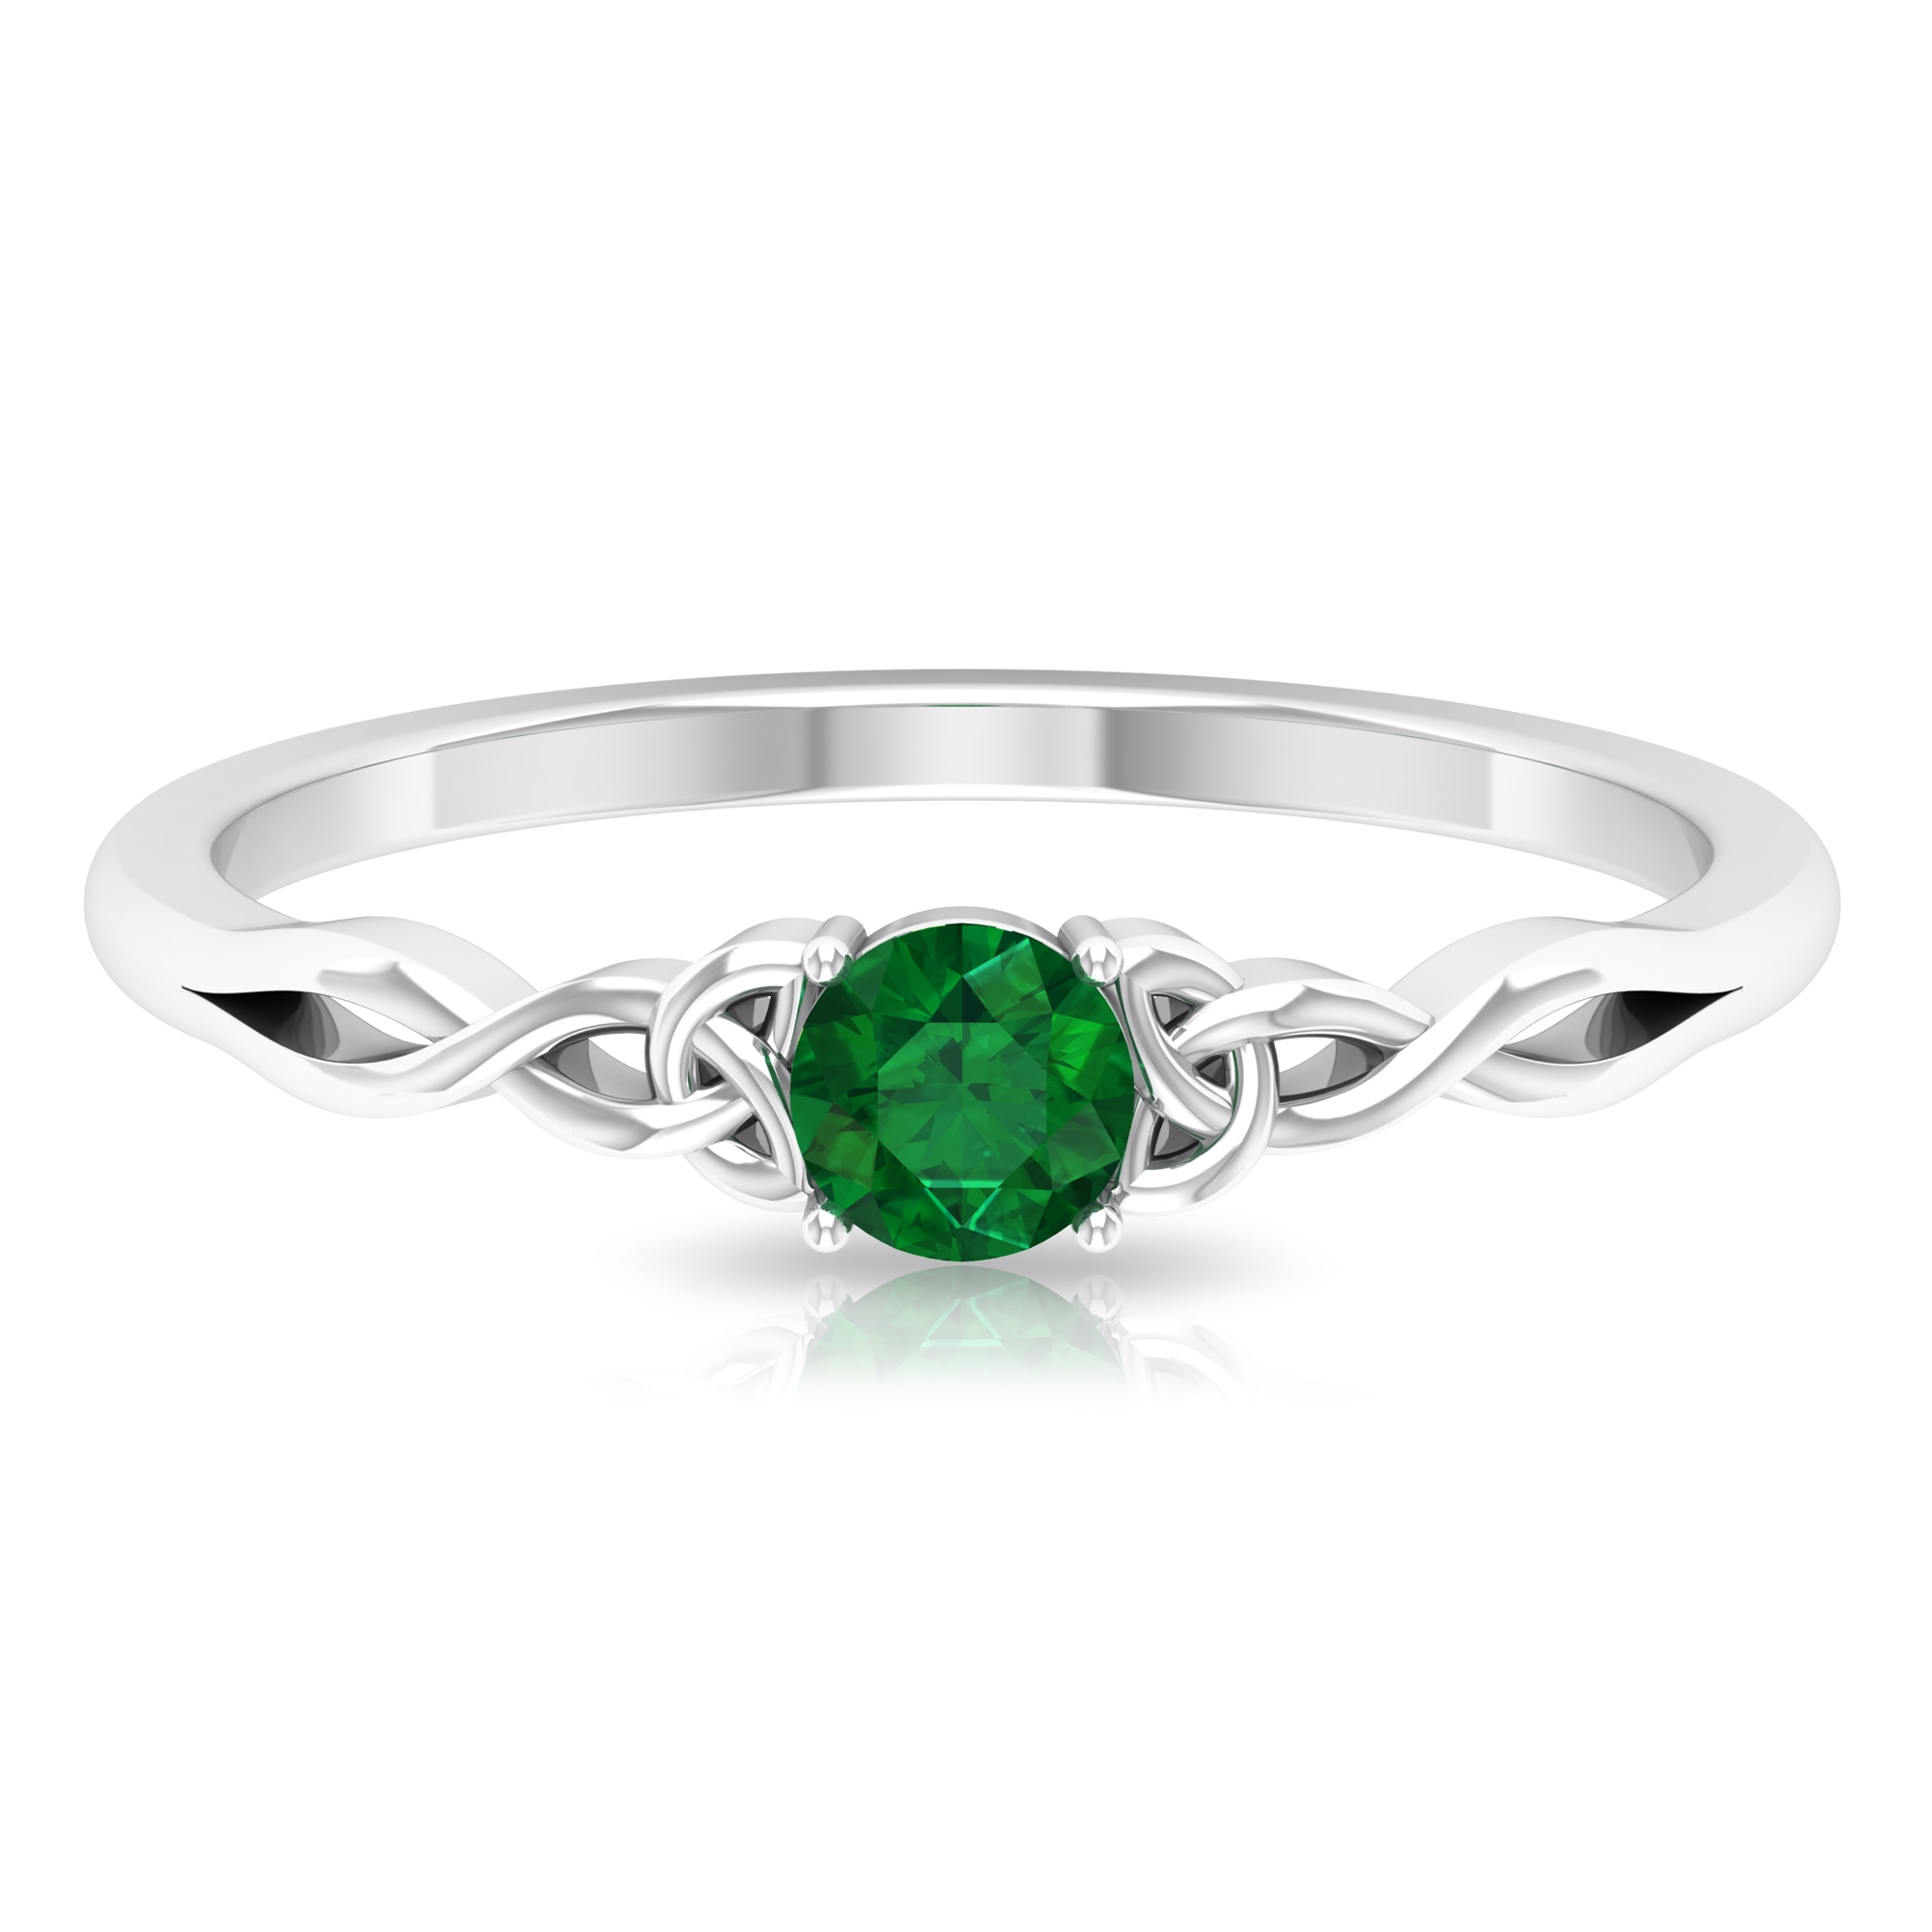 May Birthstone 4 MM Round Cut Emerald Solitaire Ring in 4 Prong Setting with Celtic Design